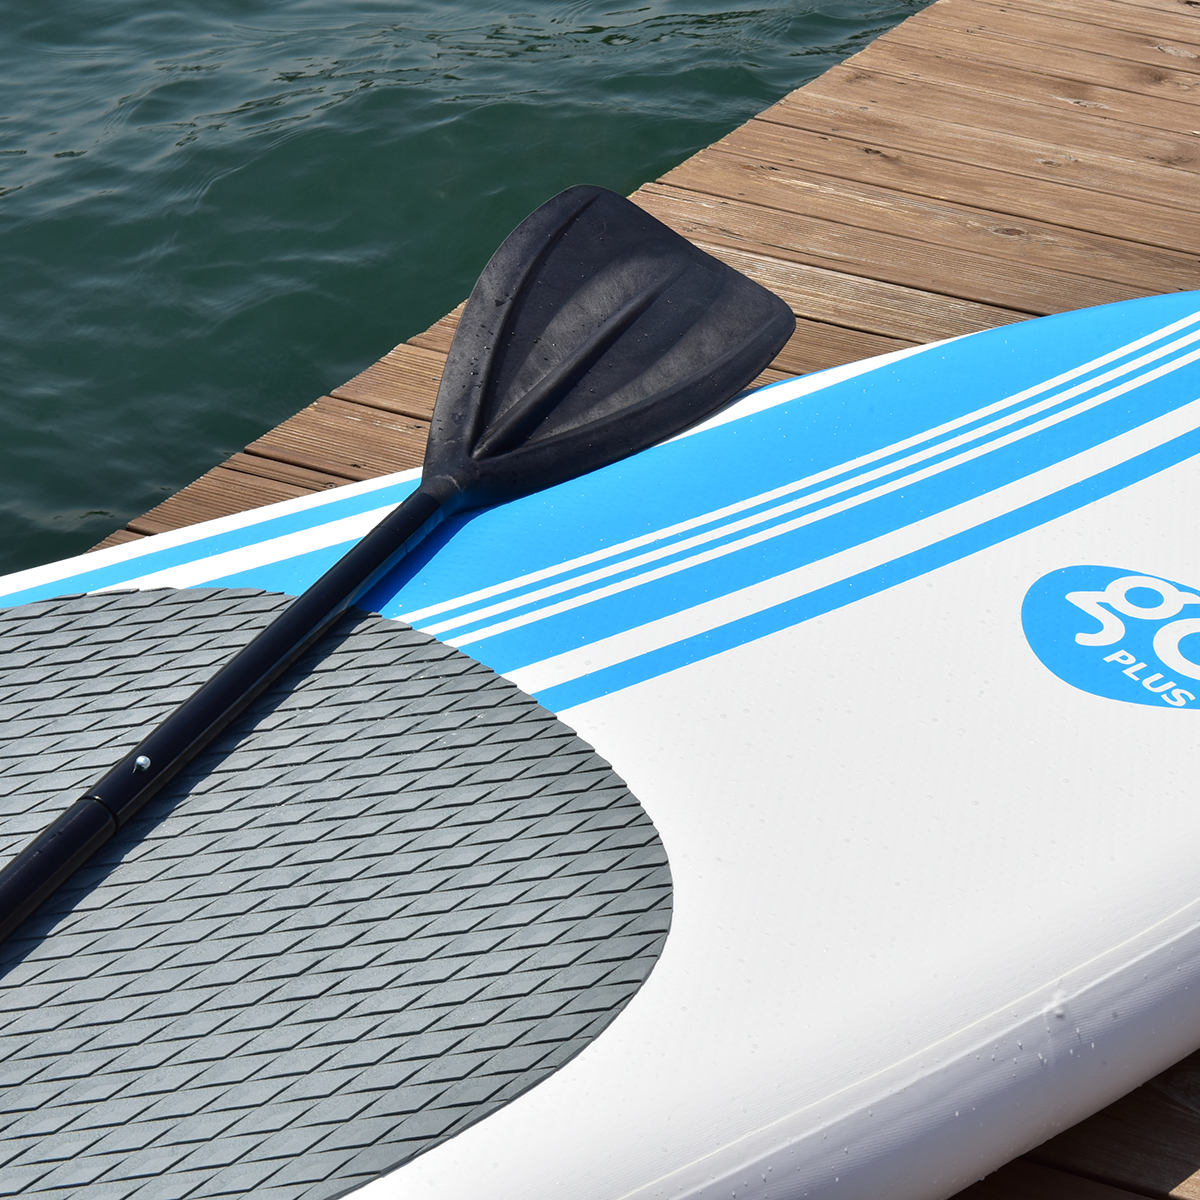 Costway 10' Inflatable Stand Up Paddle Board SUP Kayak ...